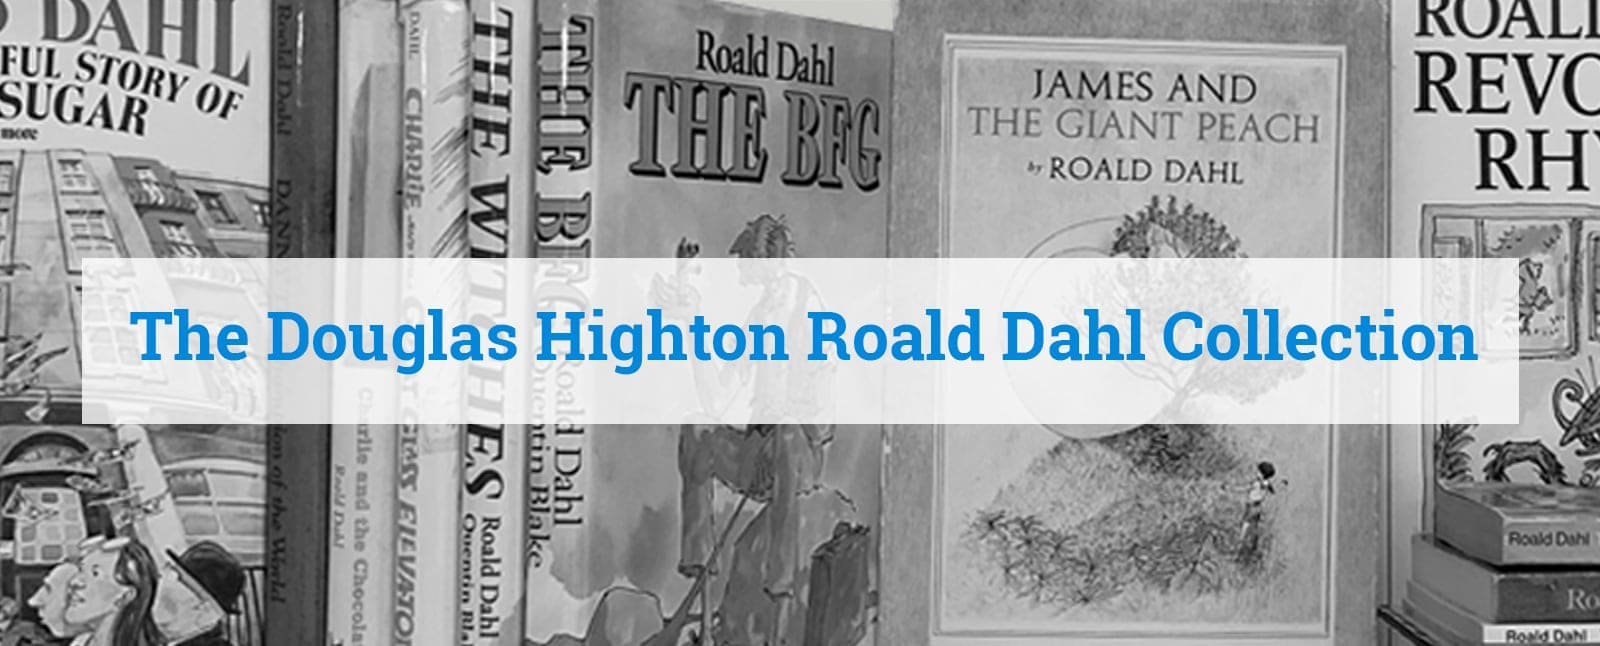 The Douglas Highton Collection